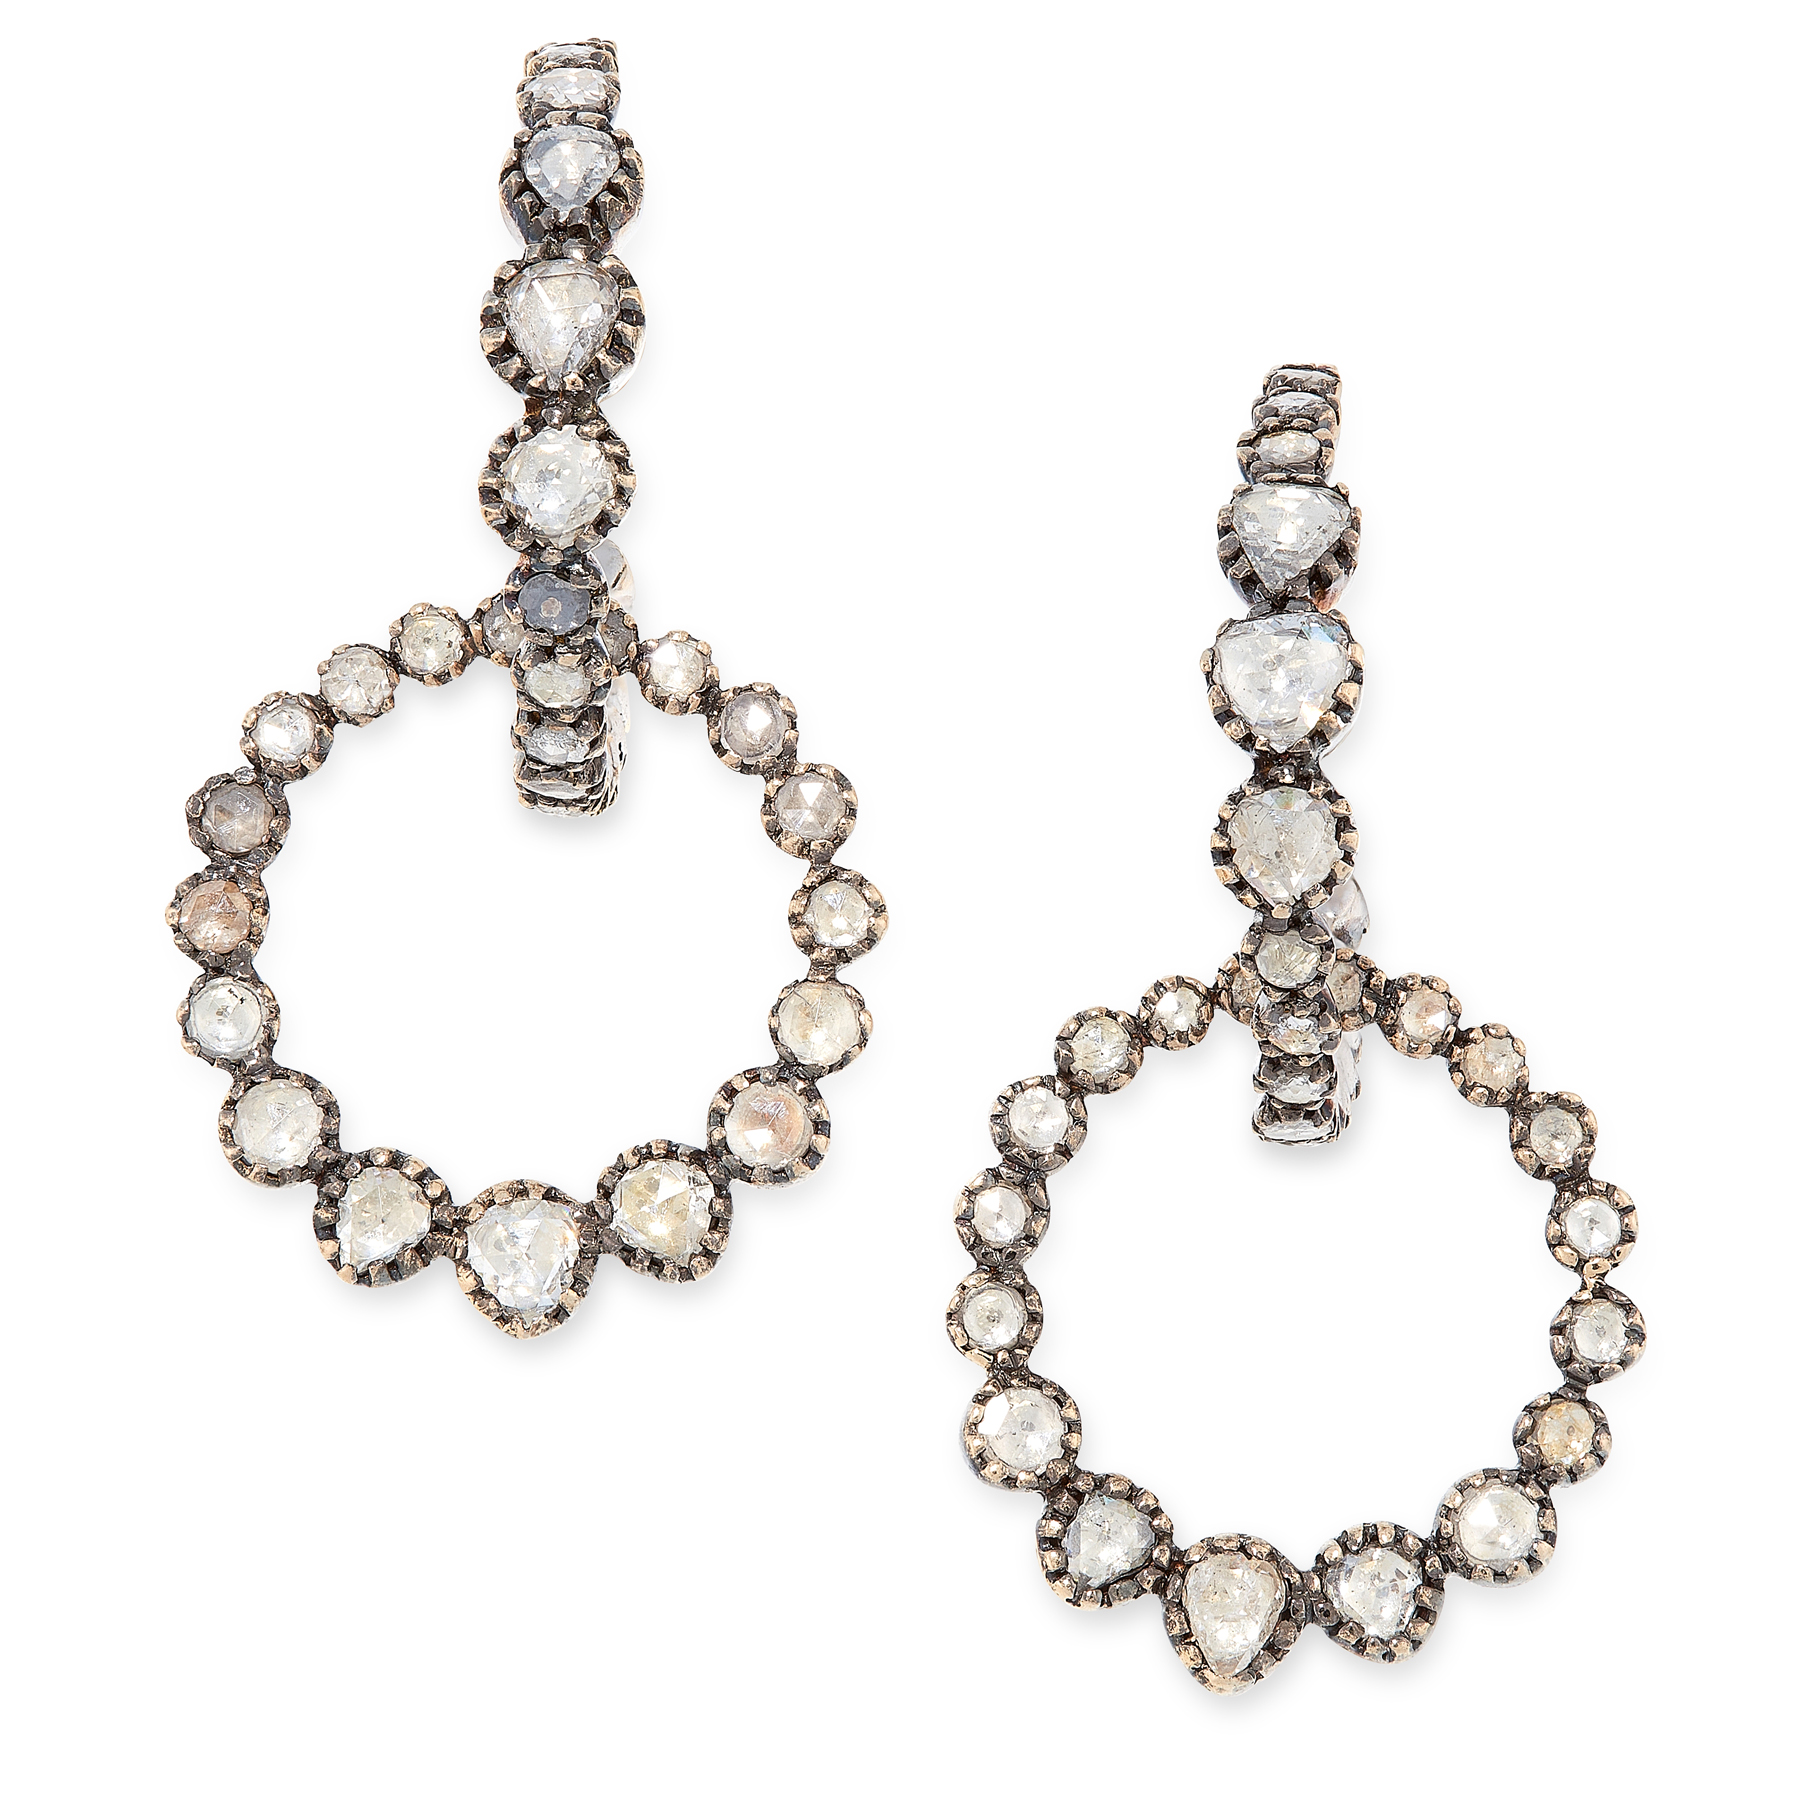 A PAIR OF ANTIQUE GEORGIAN DIAMOND HOOP EARRINGS, CIRCA 1800 in yellow gold and silver, each